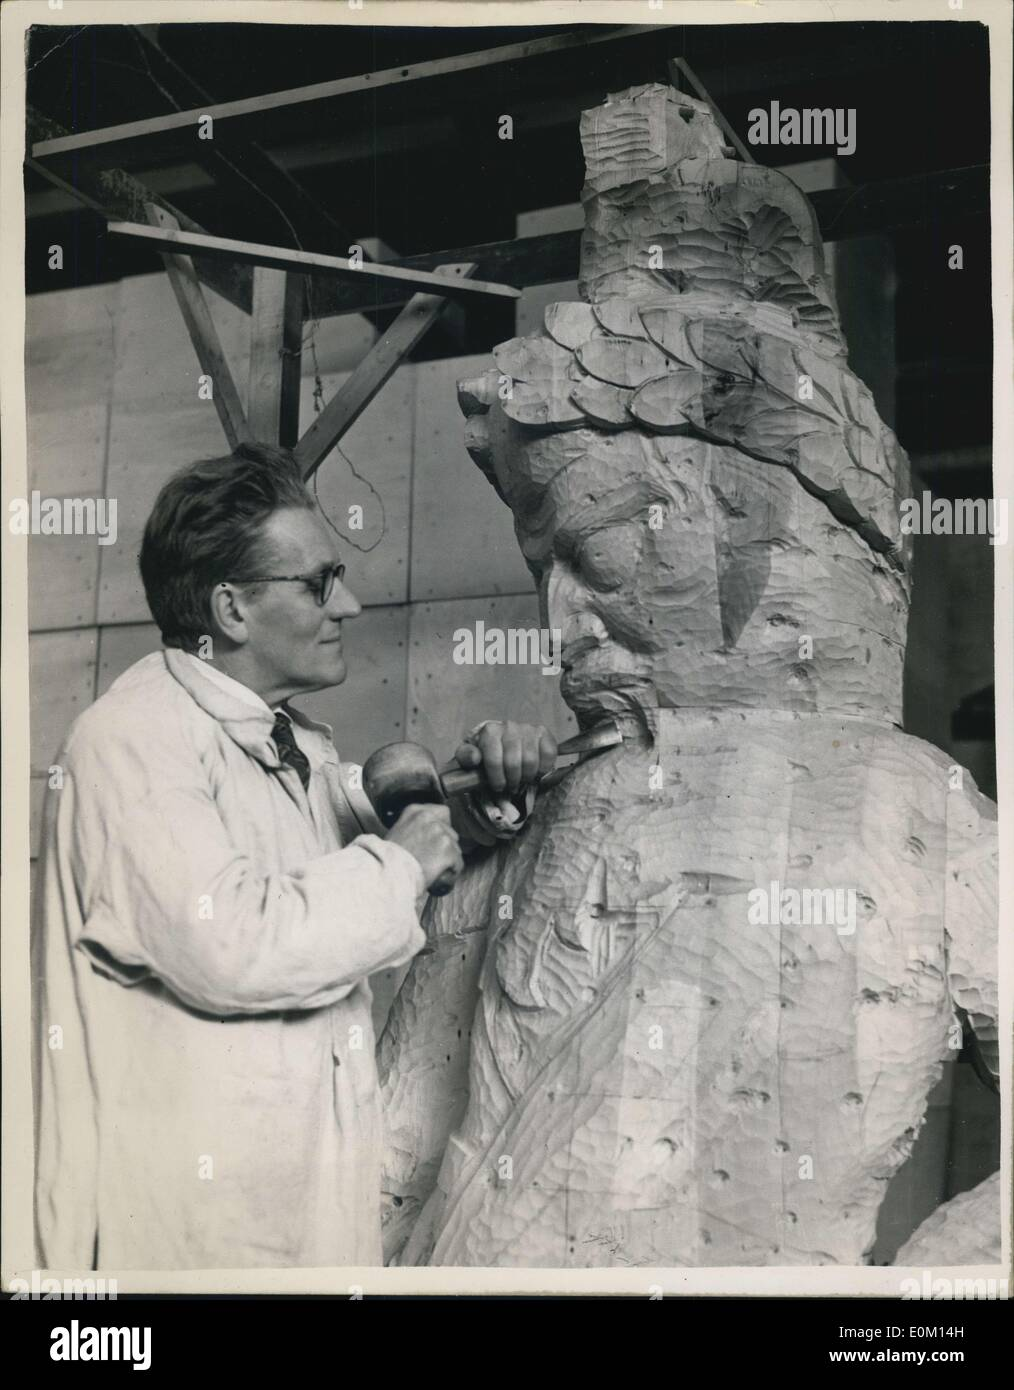 Feb. 28, 1953 - Gog and Magog are born again: In a studio at Welwyn Garden City sculptor David Evans is working on two pieces of reborn London history - the new statues of those legendary giants, Gog and Magog. It is just over 12 years since their prodecessors. Who had stood in Guildhall since 1708. Perished in flames when fire bombs rained down. Working from Olay models, the culptor has fashioned the two statues in limewood, each 9ft, 3 ins high, and weighing about 15 ow. The statues are expected to be in their places in time for the Queen's Coronation visit to the city - Stock Image